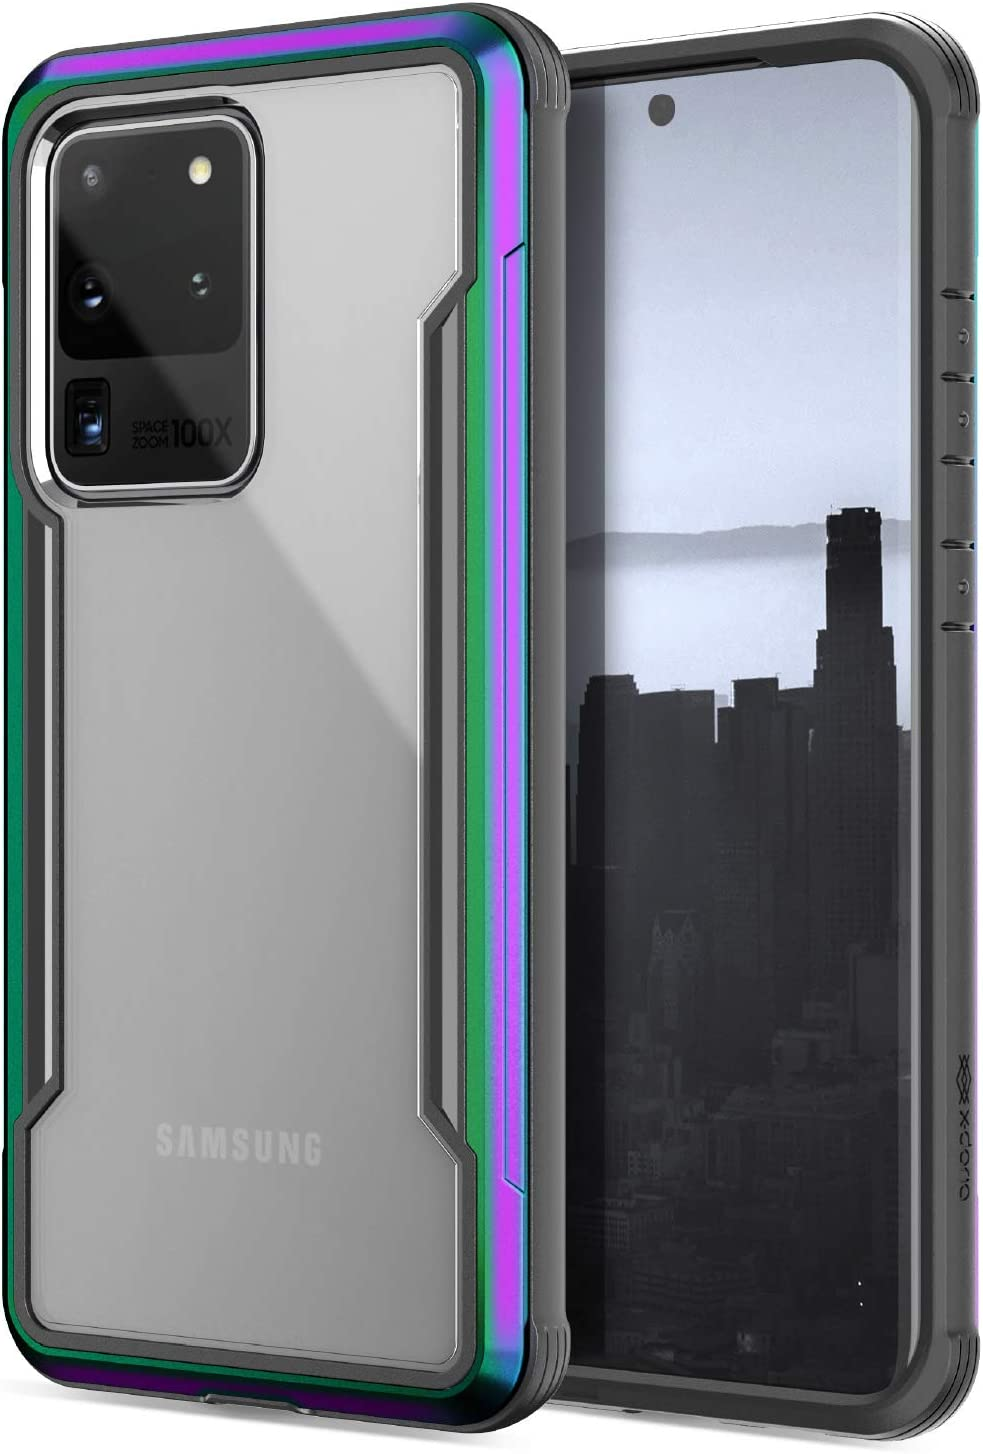 Defense Shield Series, Samsung Galaxy S11 (S20 Plus) Phone Case - Military Grade Drop Tested, Anodized Aluminum, TPU, and Polycarbonate Protective Case for Samsung Galaxy S11/S20 Plus, (Iridescent)